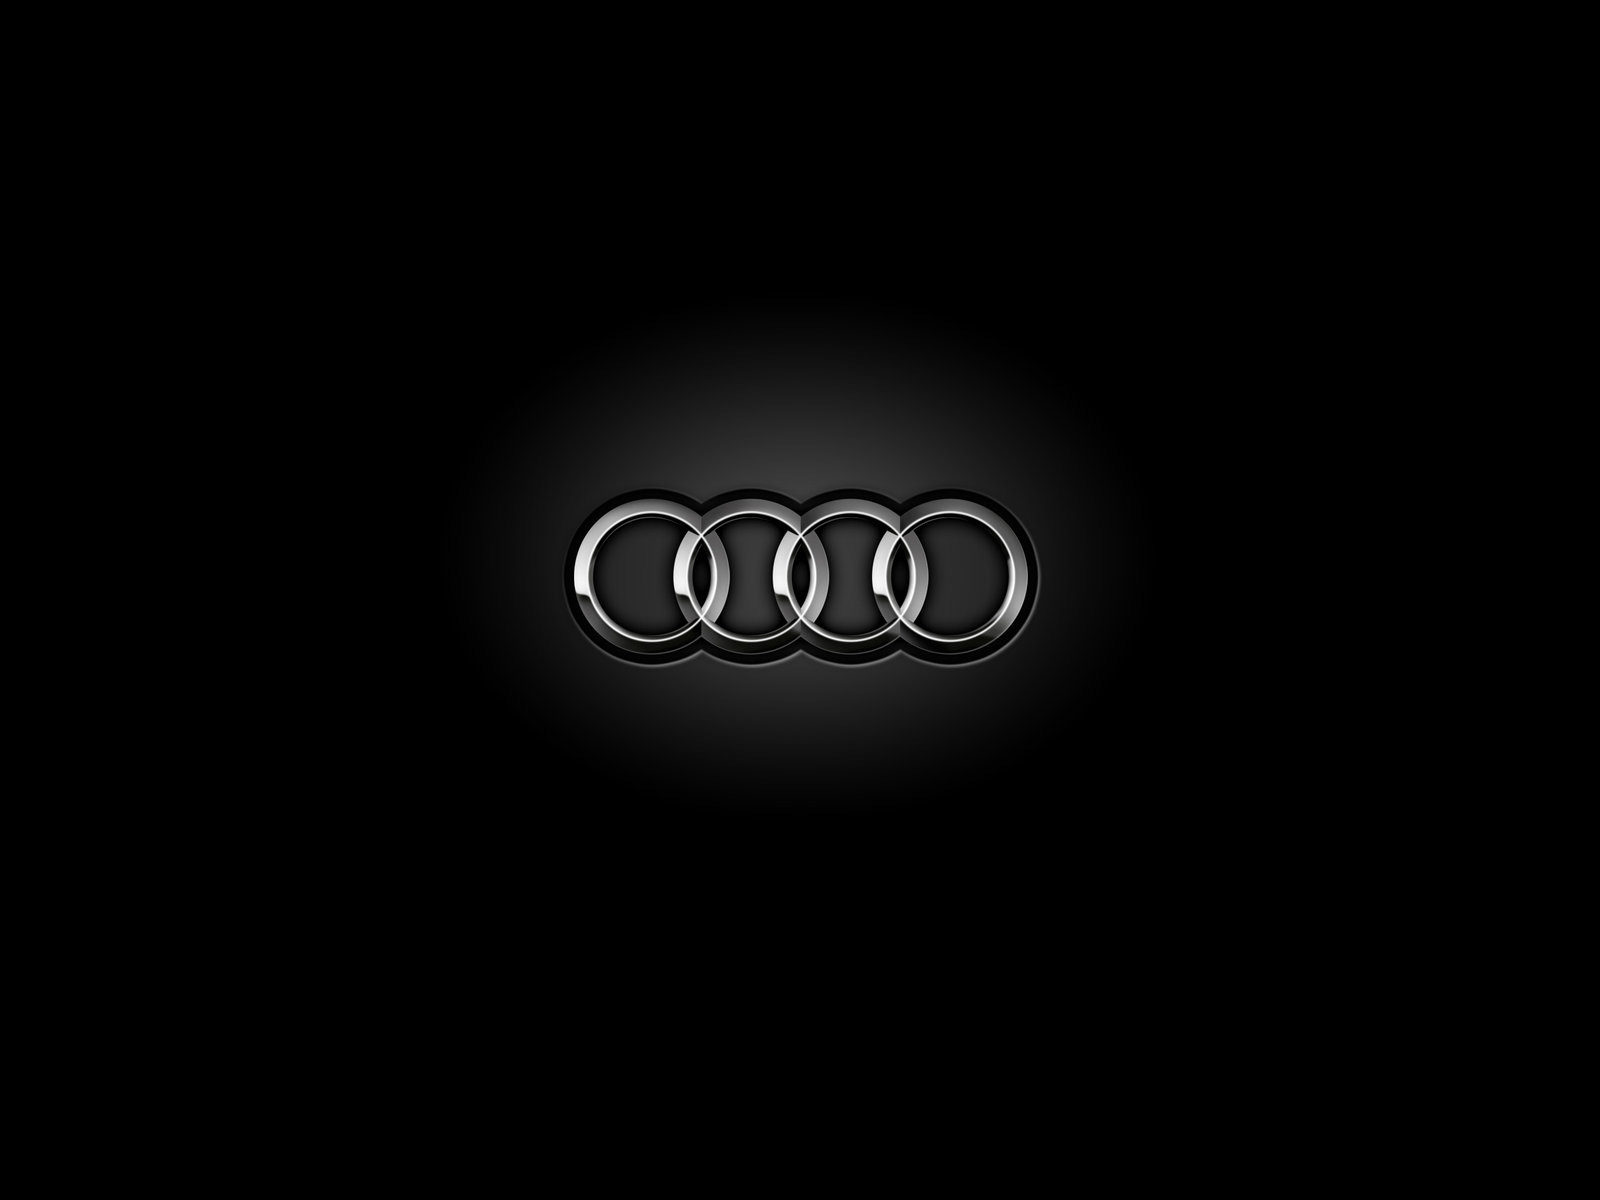 Audi Logo Hd Wallpaper Wallpapersafari